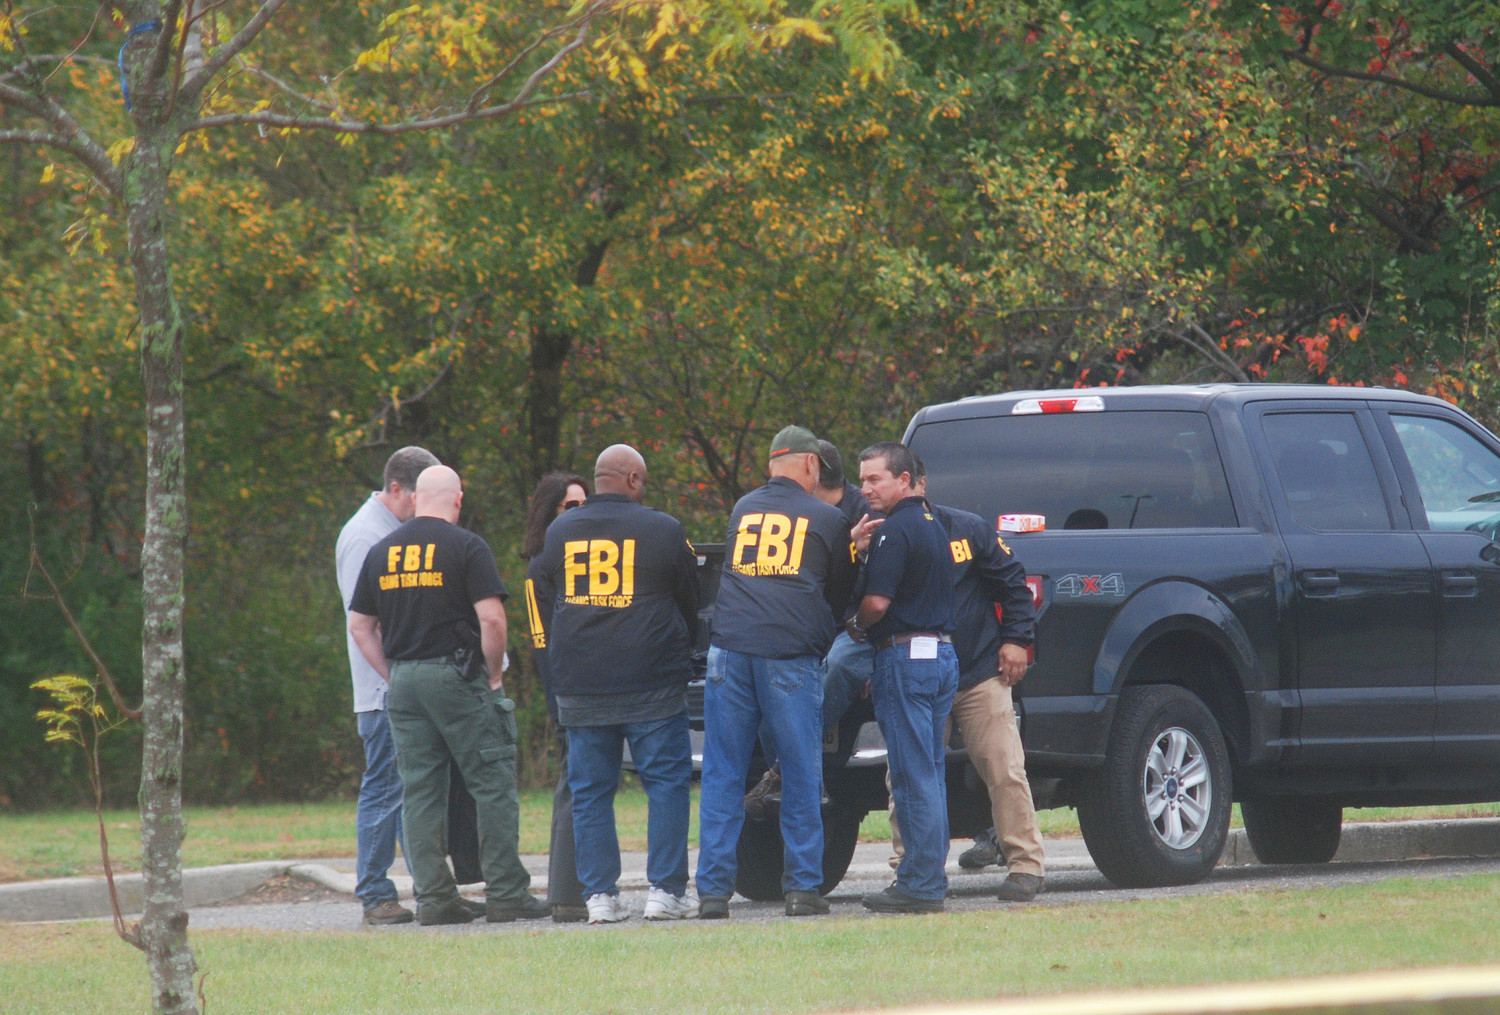 Possible human remains found in Nassau County park